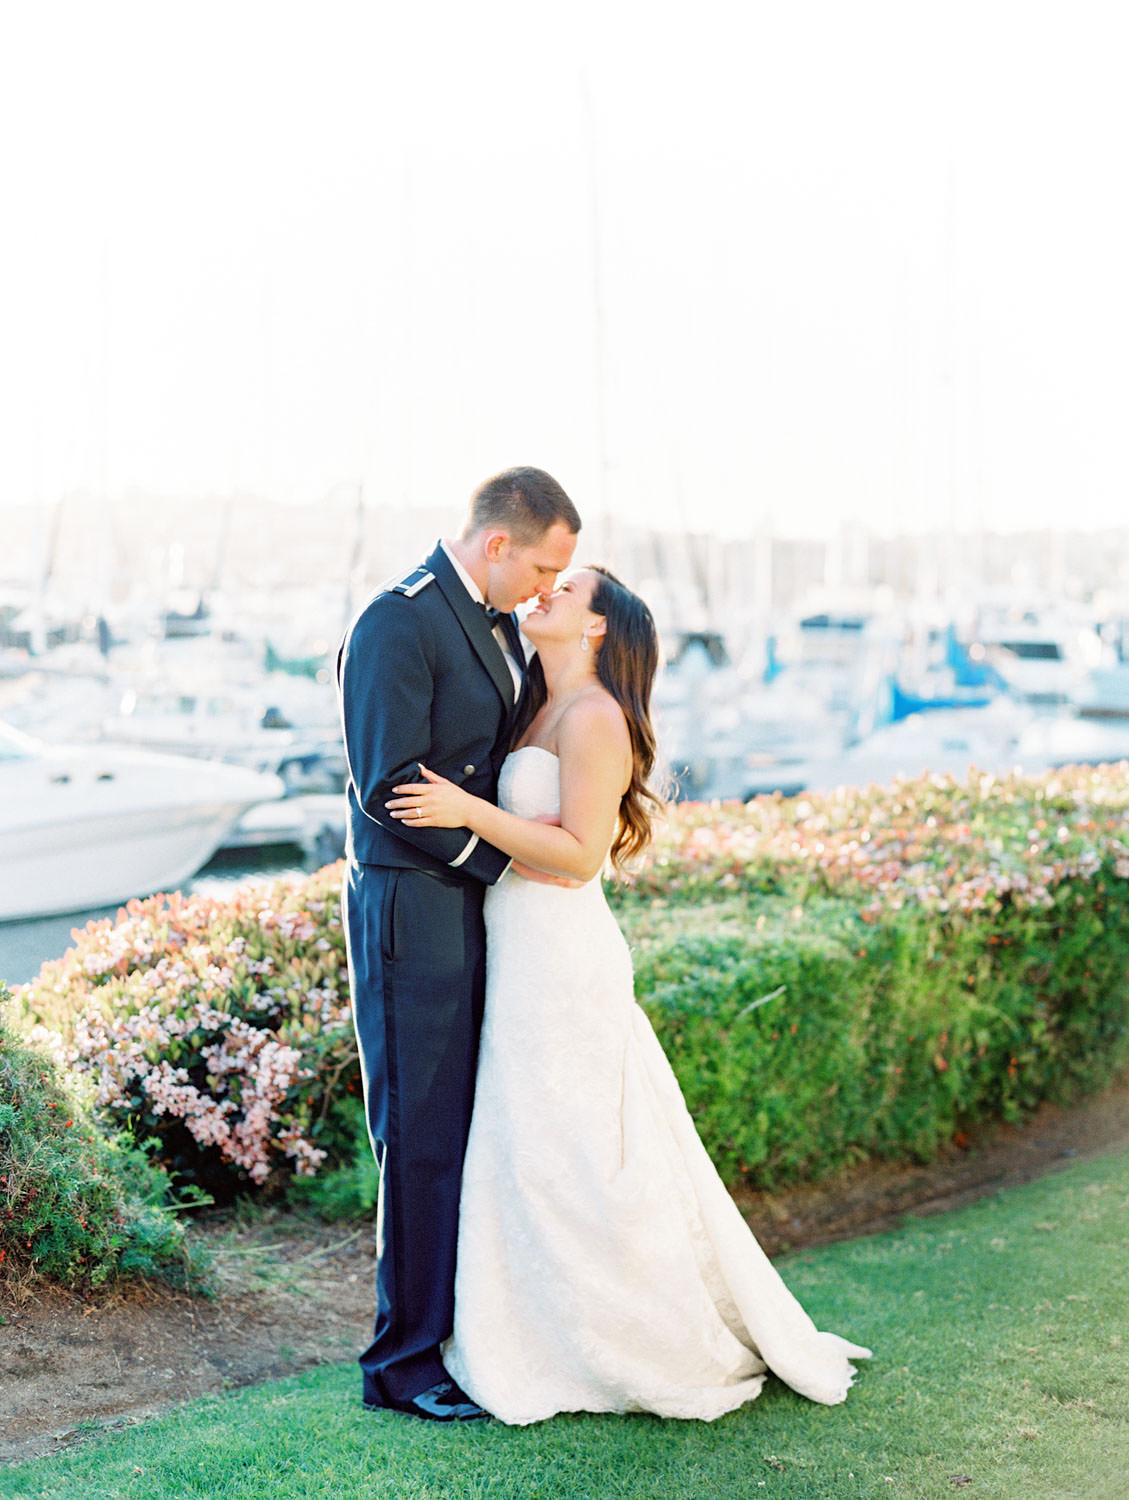 Bride and groom kissing in front of the marina during sunset captured on film. Wedding at Humphreys by Cavin Elizabeth Photography